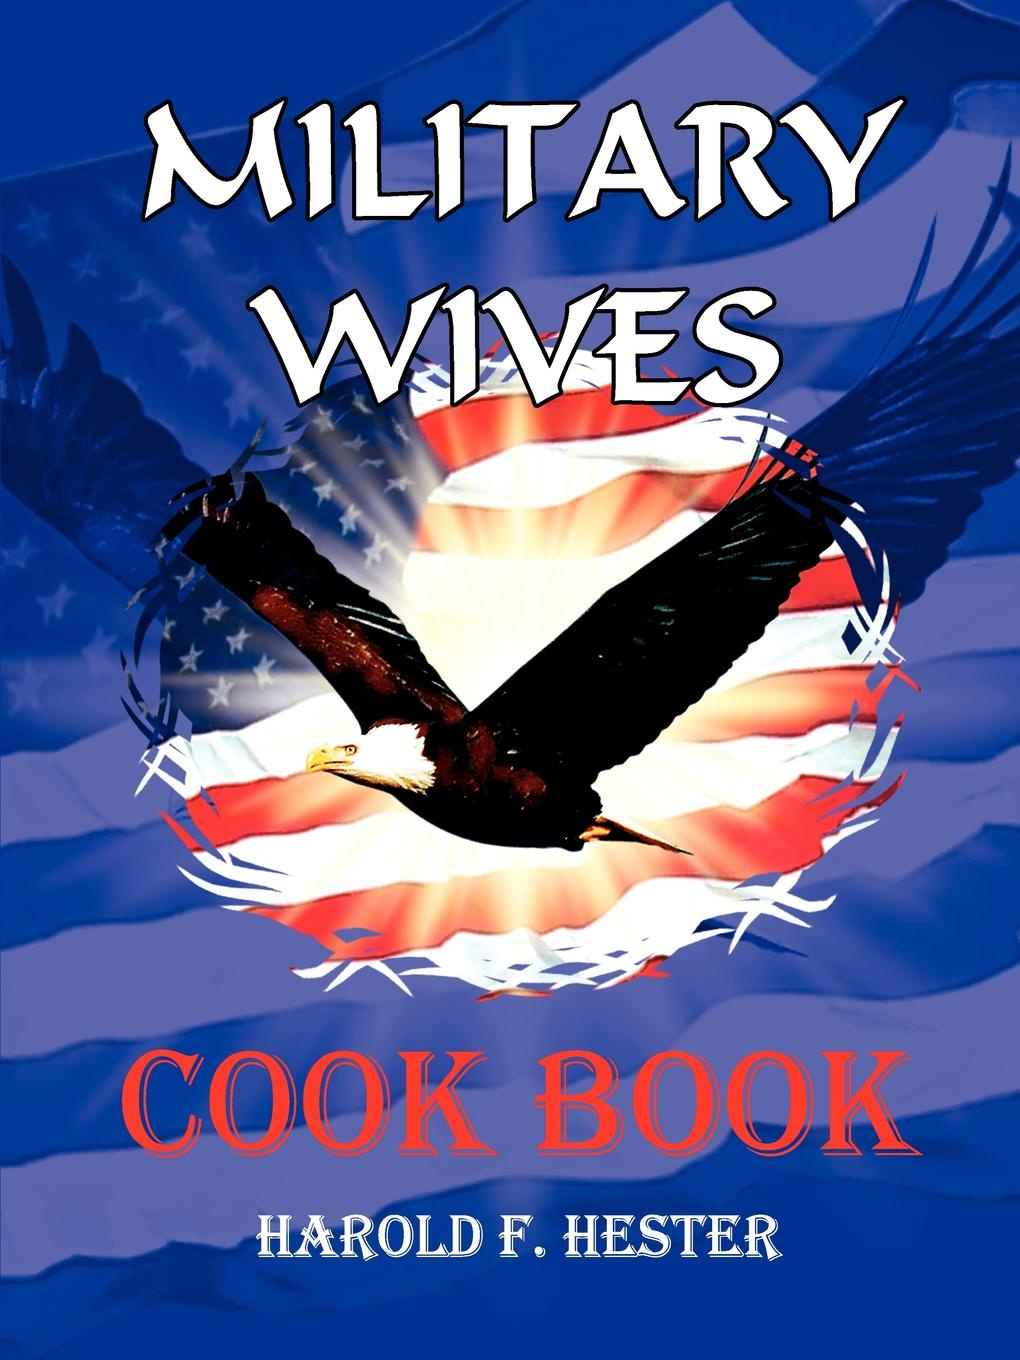 harold hester Military Wives Cook Book the wives military the military wives wherever you are – louise's story